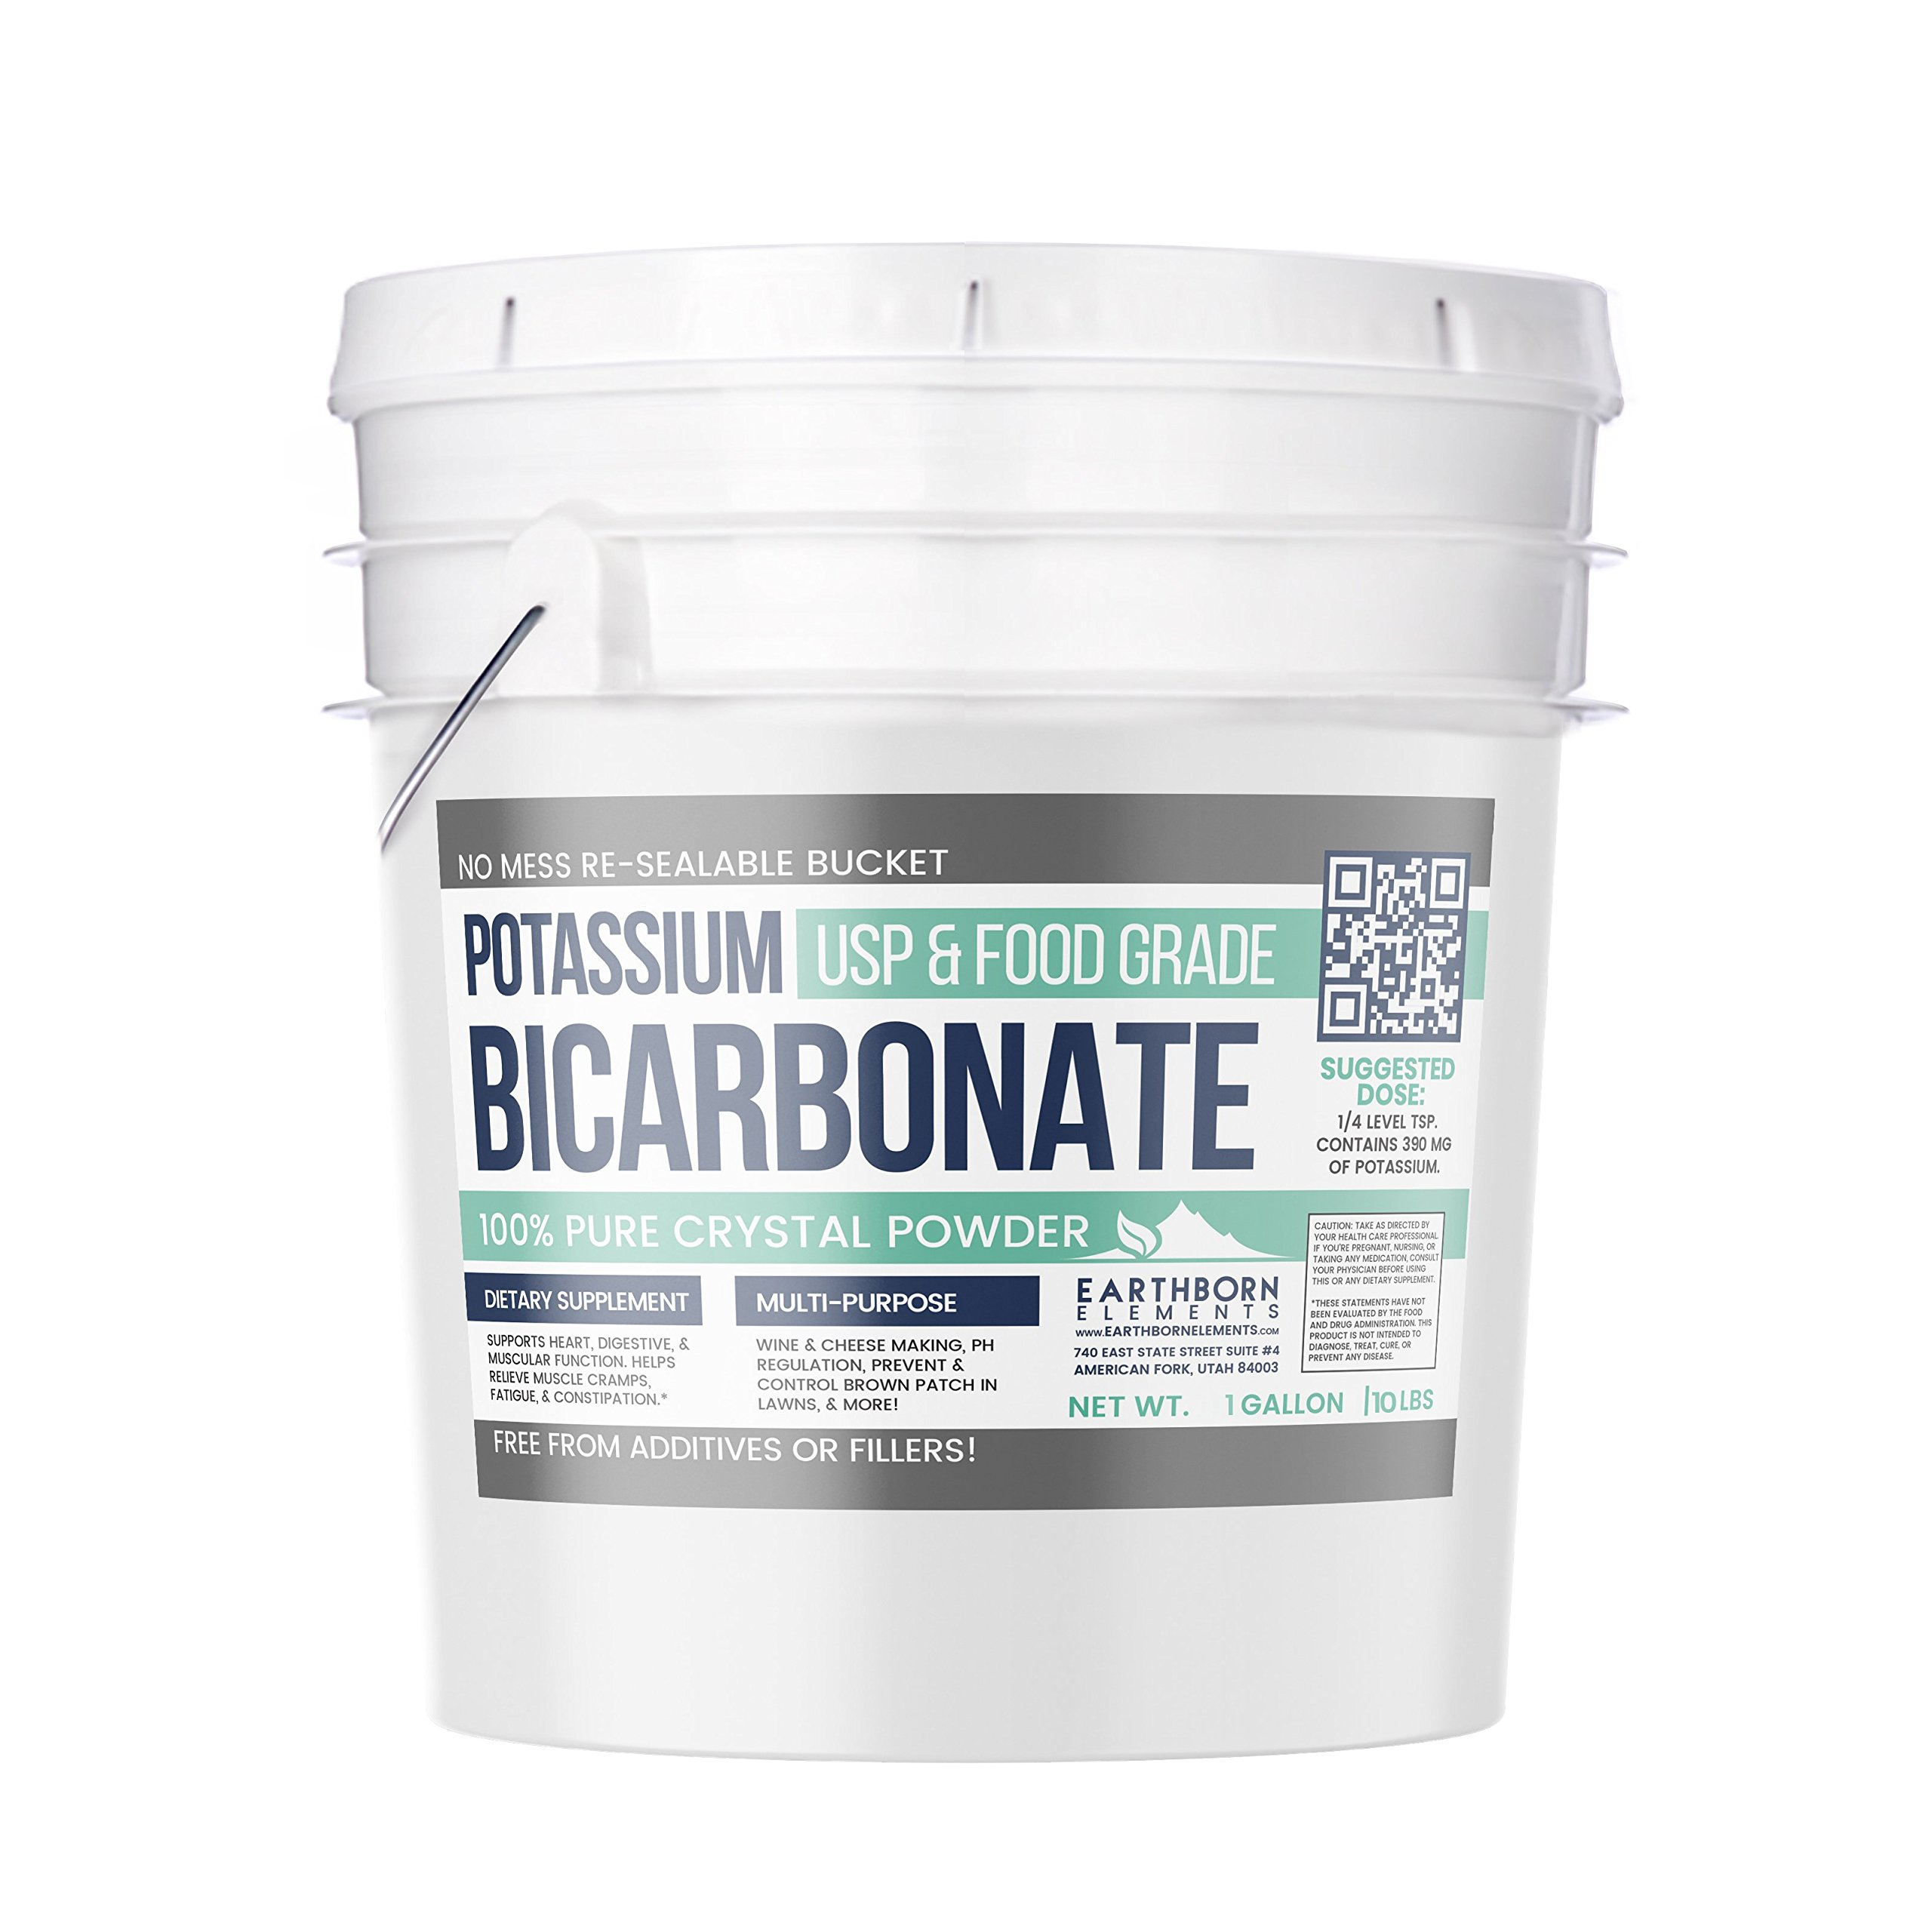 Potassium Bicarbonate (1 Gallon, 10 lbs,) by Earthborn Elements, Highest Purity, Food and USP Pharmaceutical Grade by Earthborn Elements (Image #1)